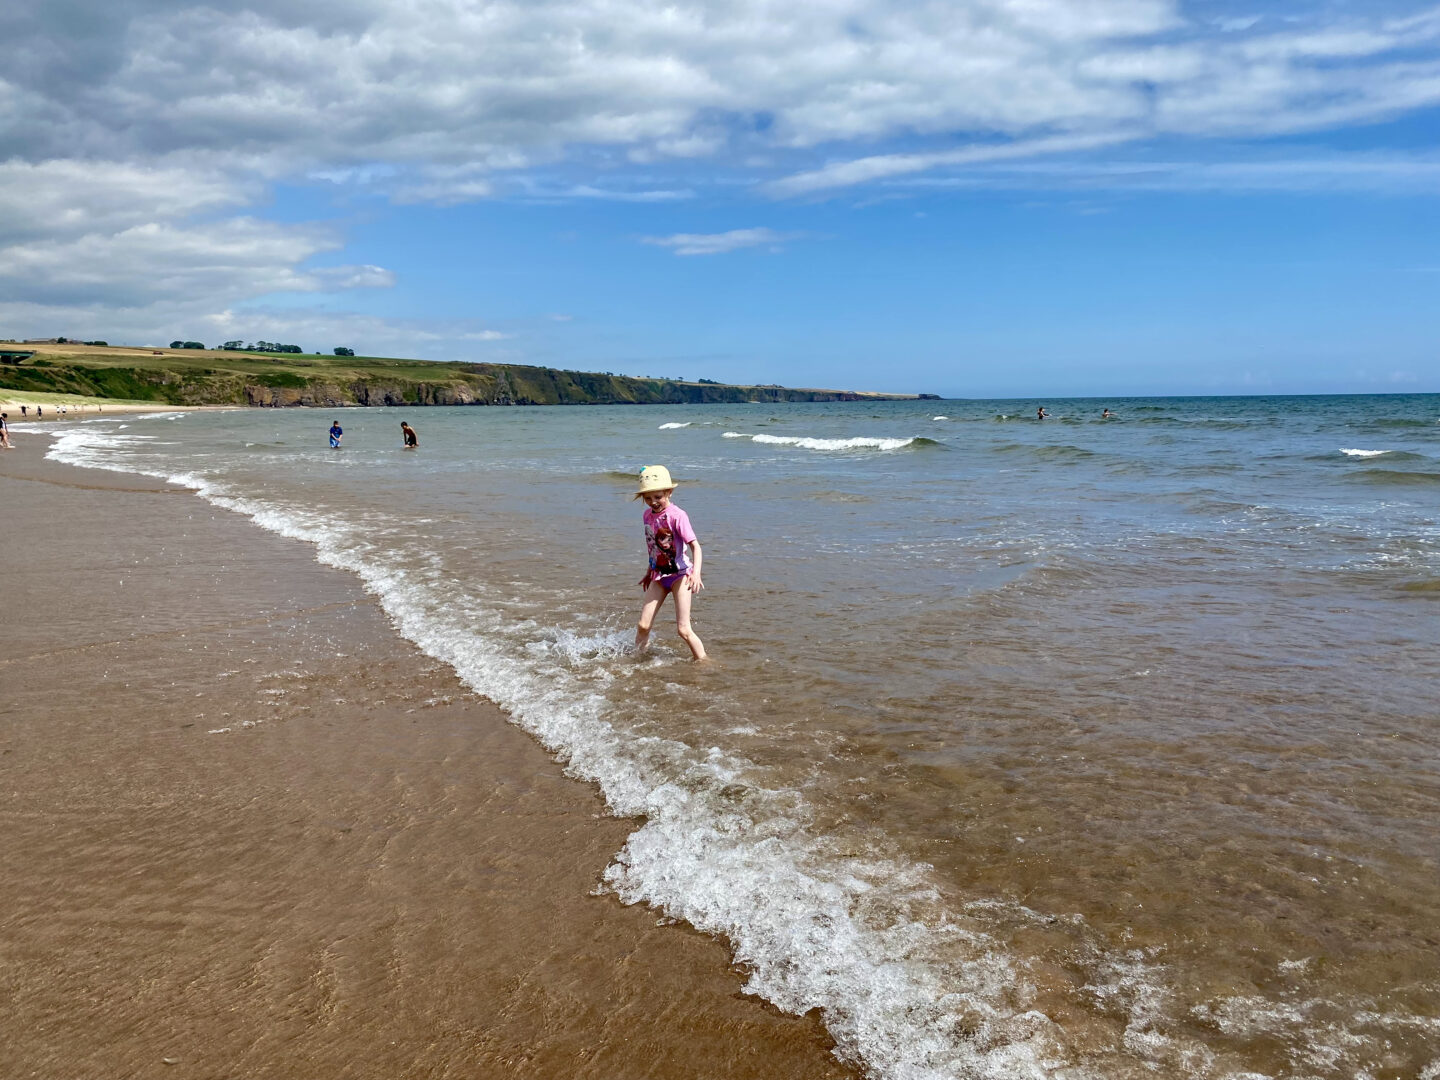 A little girl plays in the waves at Lunan Bay, Angus, Scotland